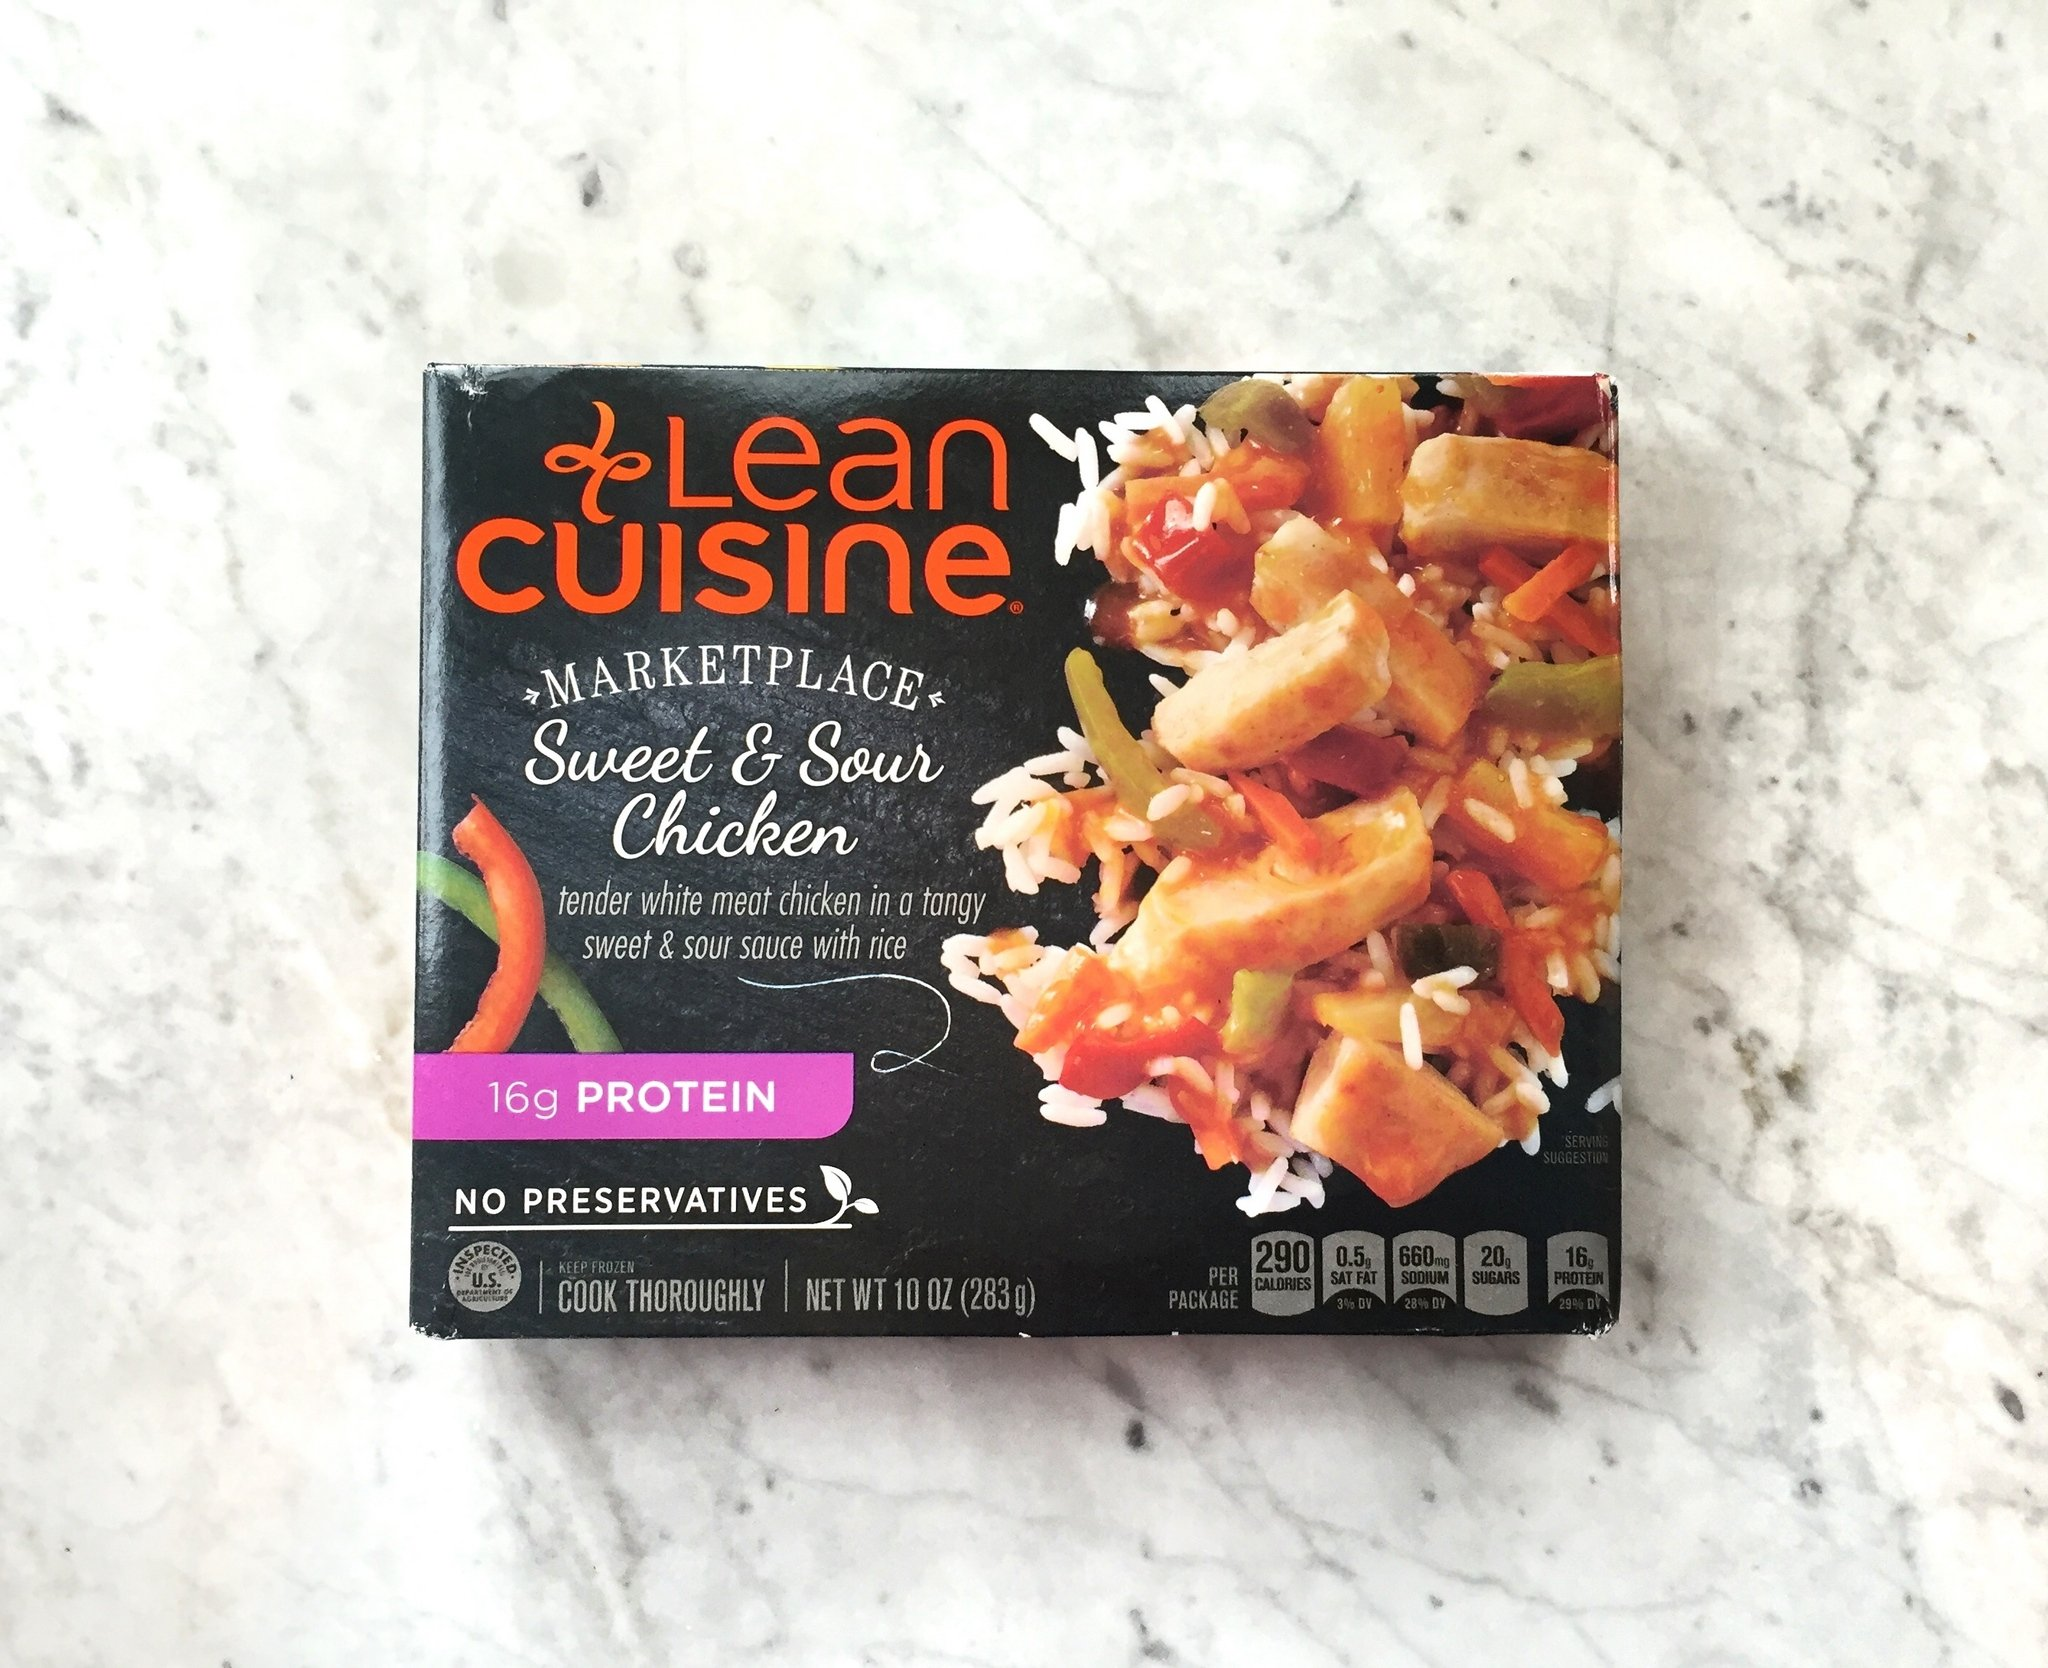 6 nutritious frozen dinners for fast easy lunches and for Are lean cuisine meals healthy